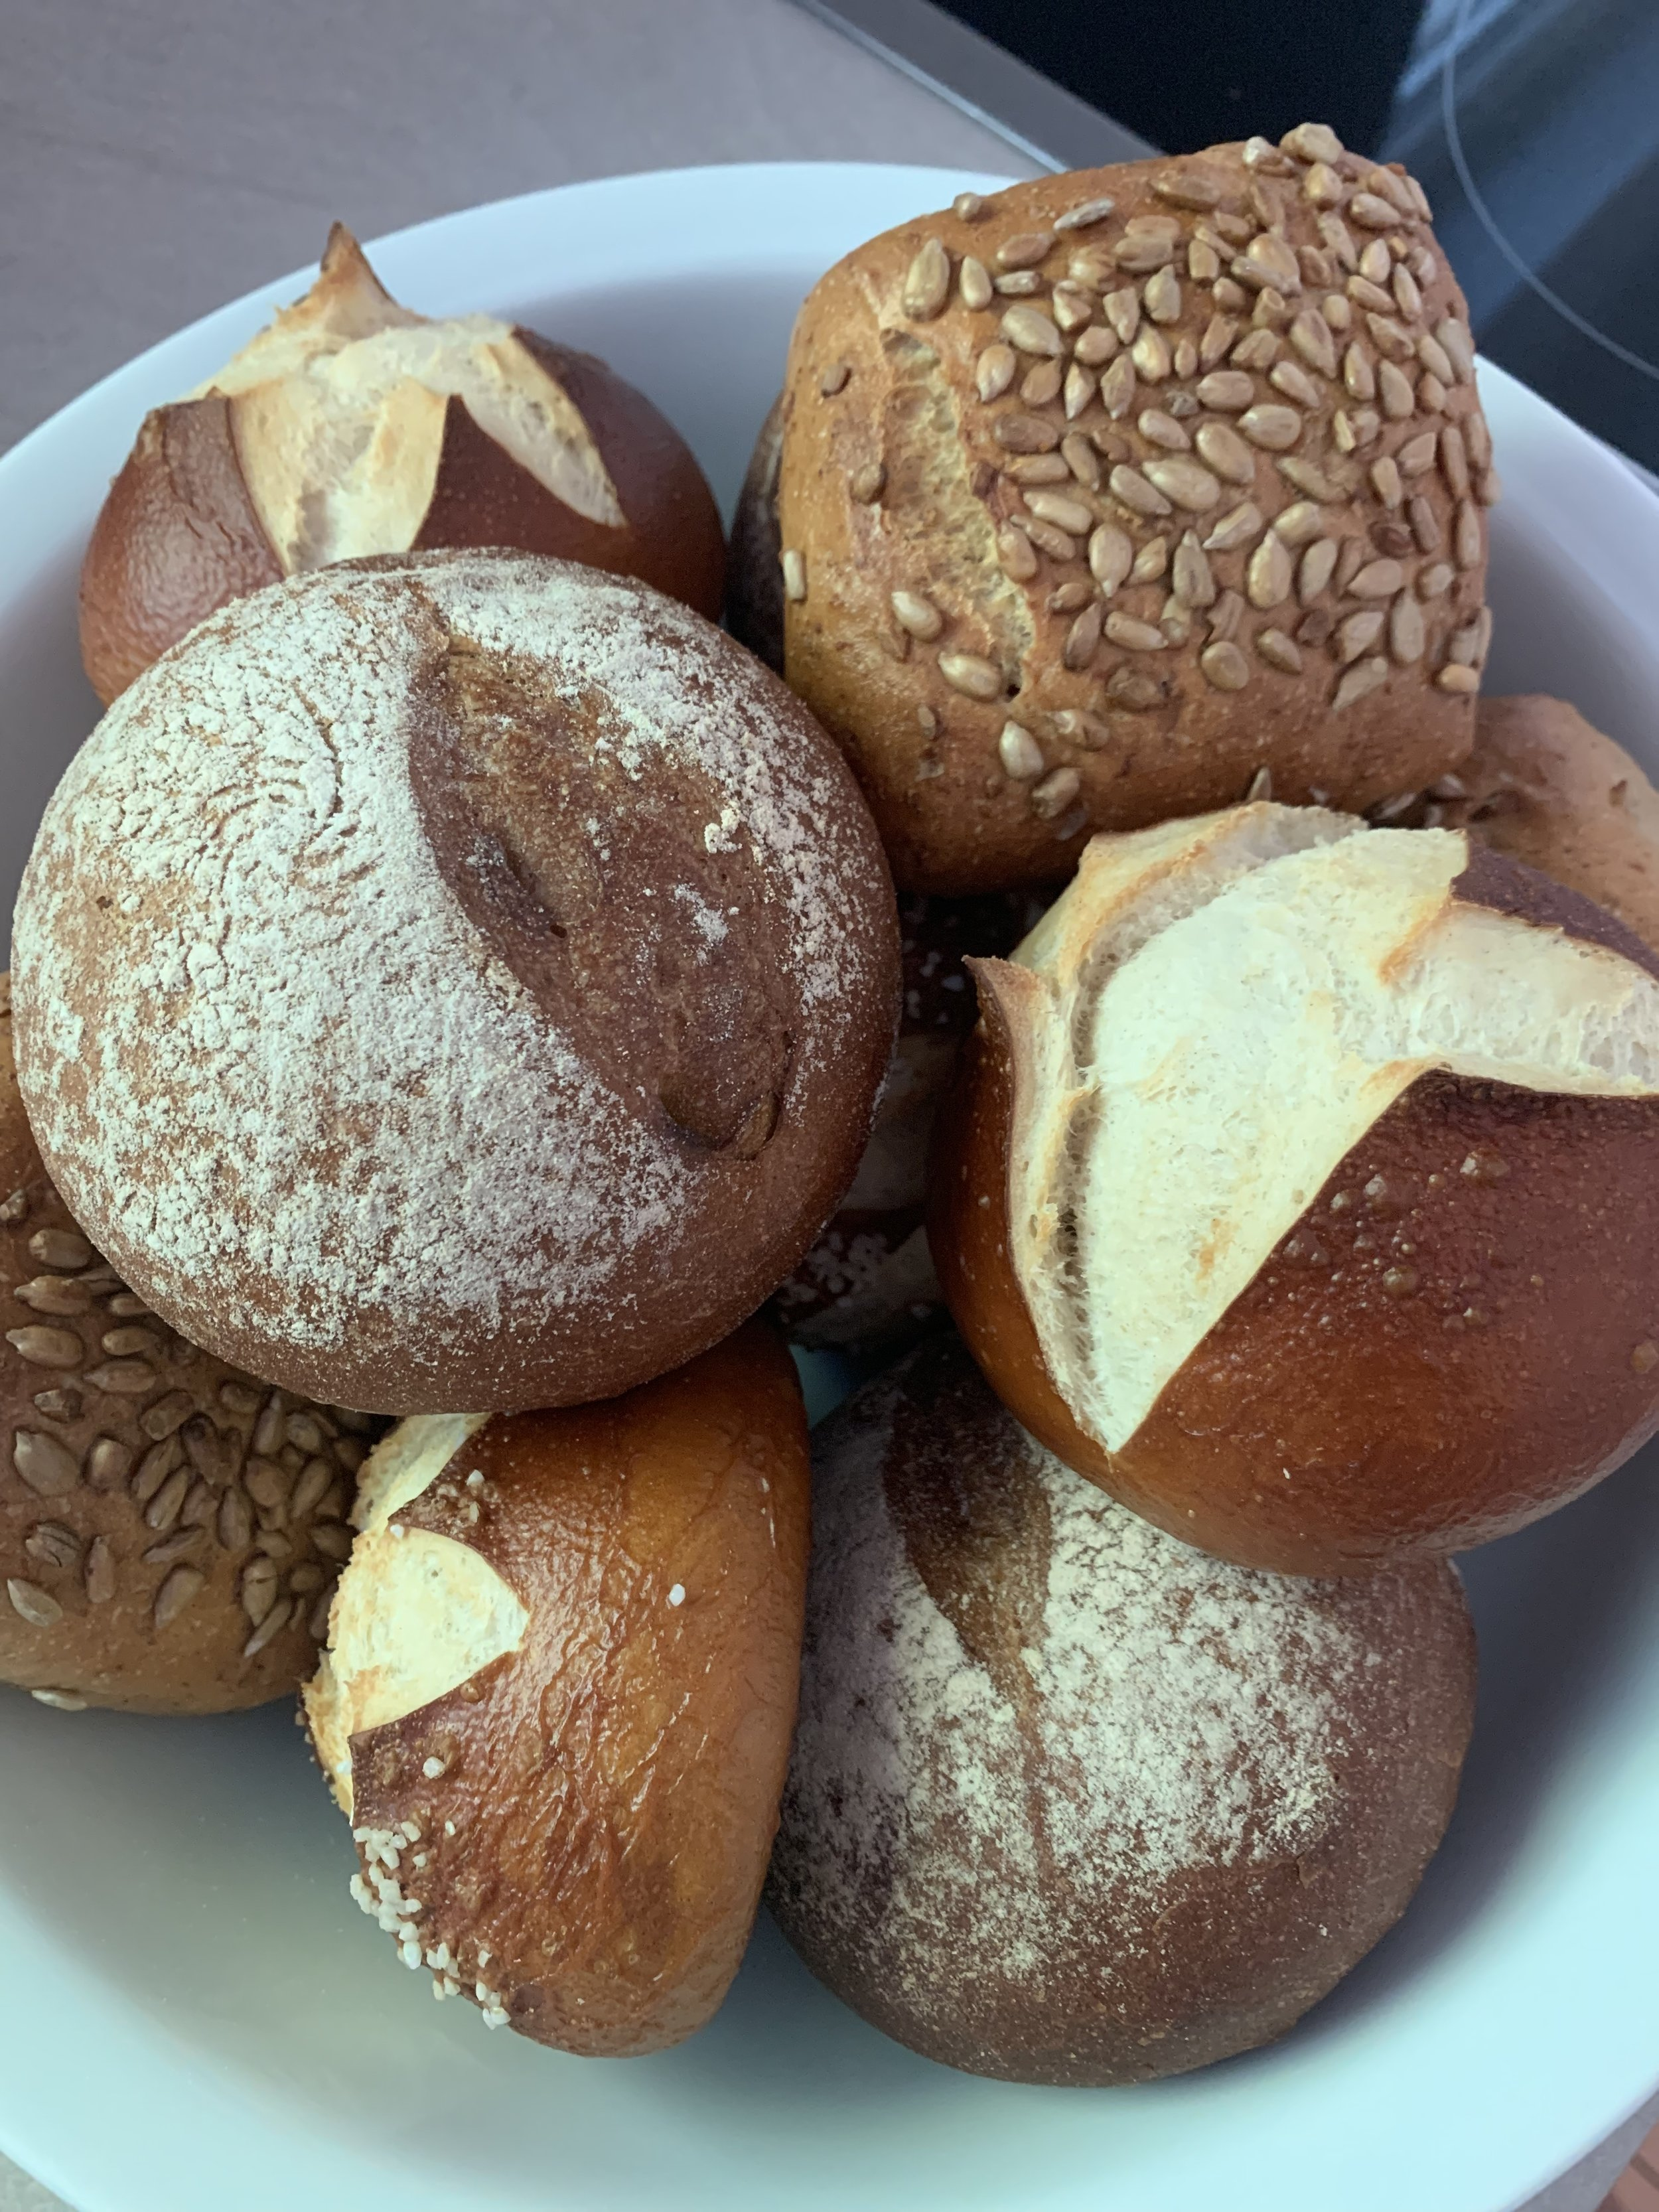 I thank God that I am not gluten intolerant. I mean, I can't even with the rolls in Germany! I walked to the bakery every couple days to get fresh rolls.